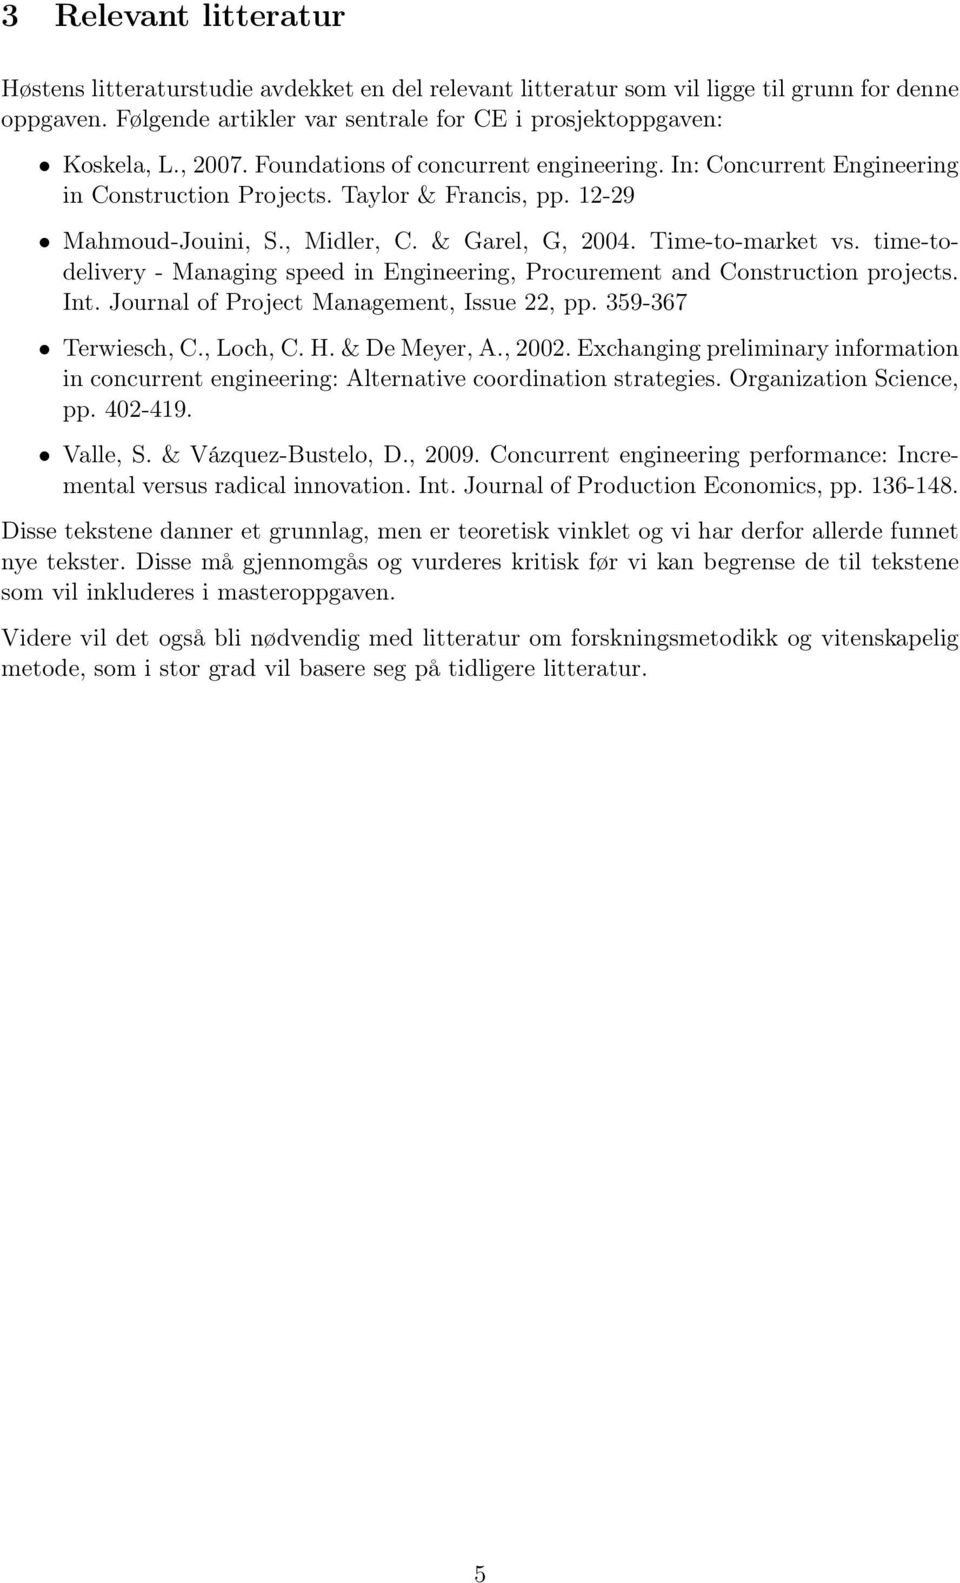 time-todelivery - Managing speed in Engineering, Procurement and Construction projects. Int. Journal of Project Management, Issue 22, pp. 359-367 Terwiesch, C., Loch, C. H. & De Meyer, A., 2002.